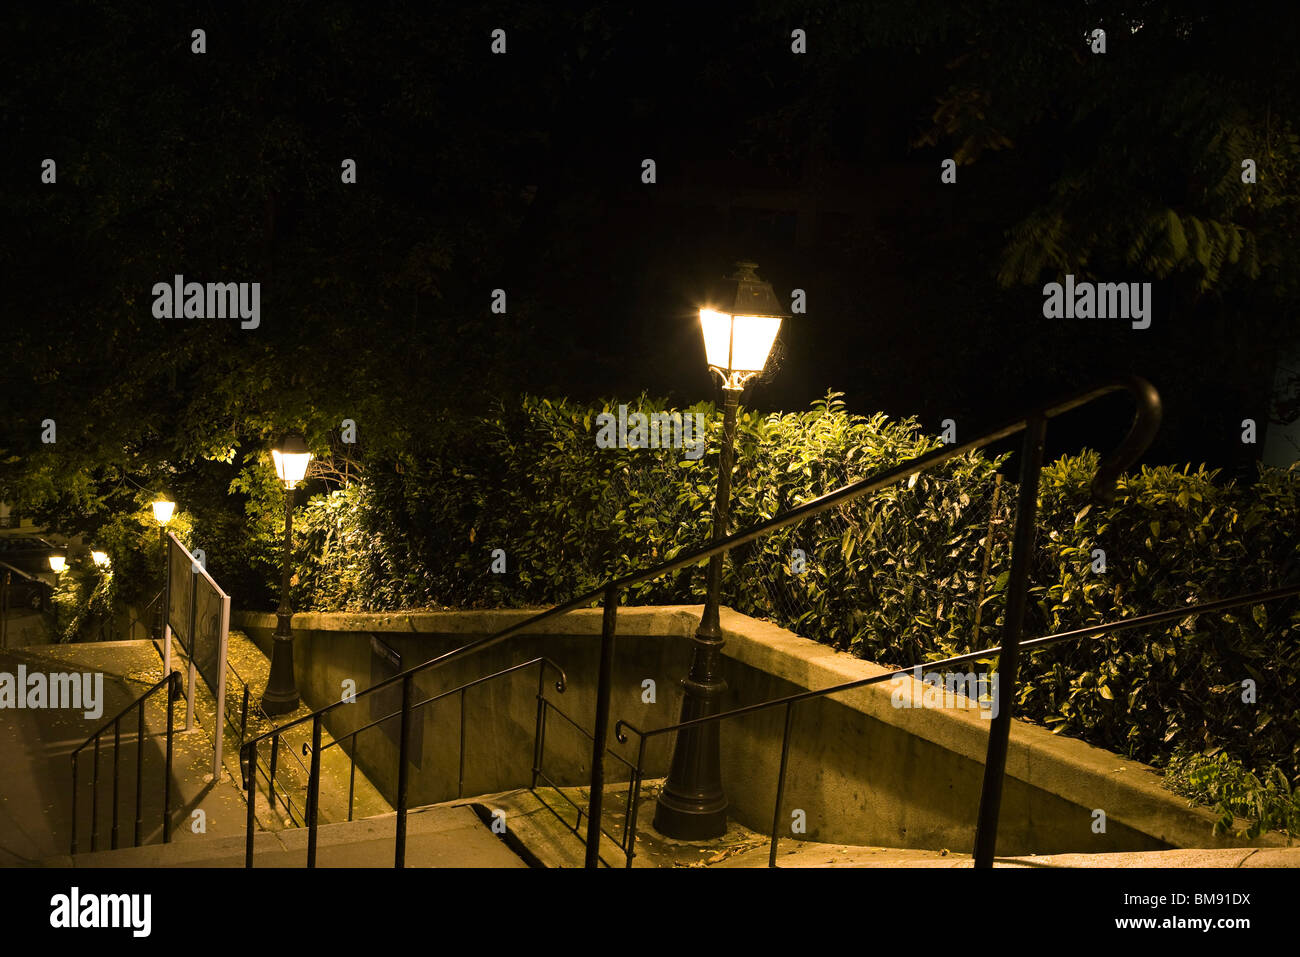 France, Paris, Montmartre, stairs lit by street lamps at night - Stock Image